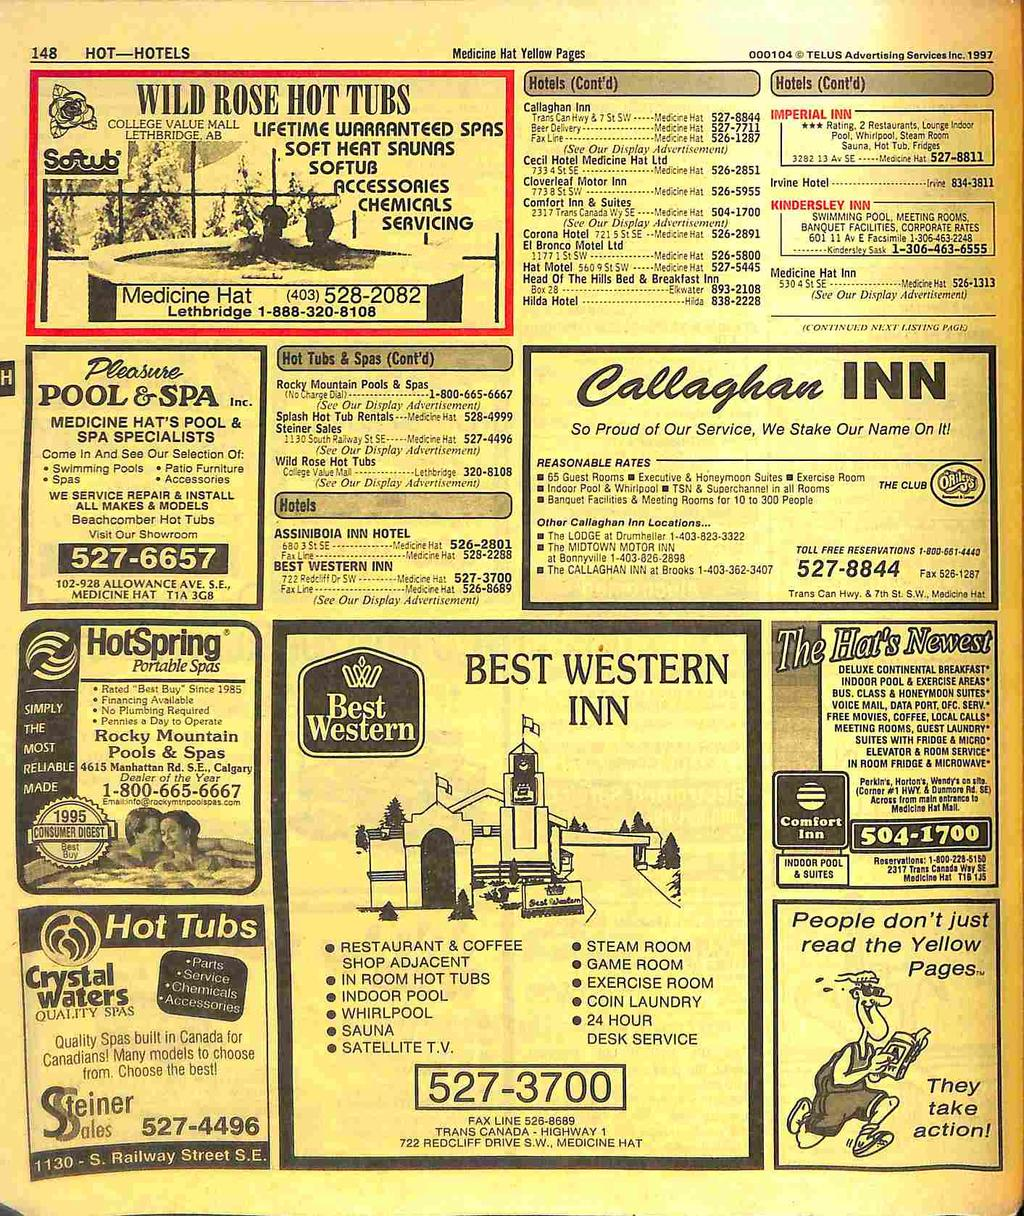 148 HOT HOTELS Medicine Hat Yellow Pages 000104 TELUS AdvonlBlng Service* Inc. 1997 WILD ROSE HOT TLBS COLLEGE VALUE MALL LETHBRfOGE.